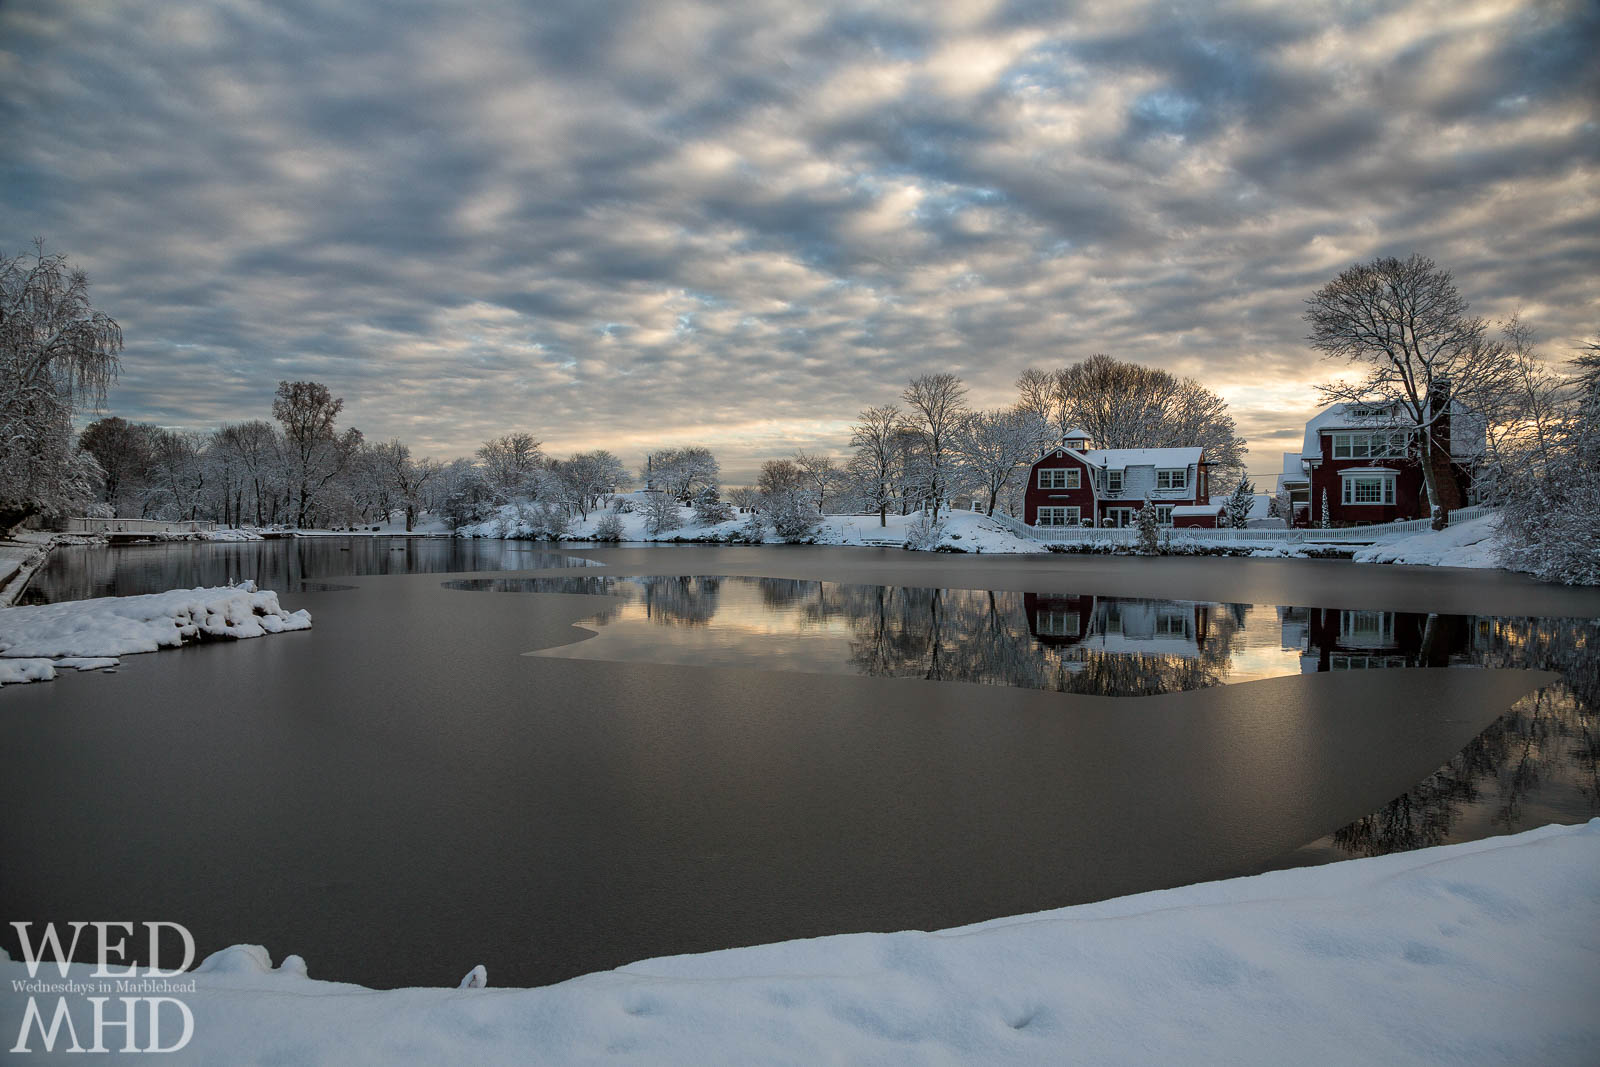 The sun rises over Redd's Pond which has begun to freeze after the first snowfall of the season